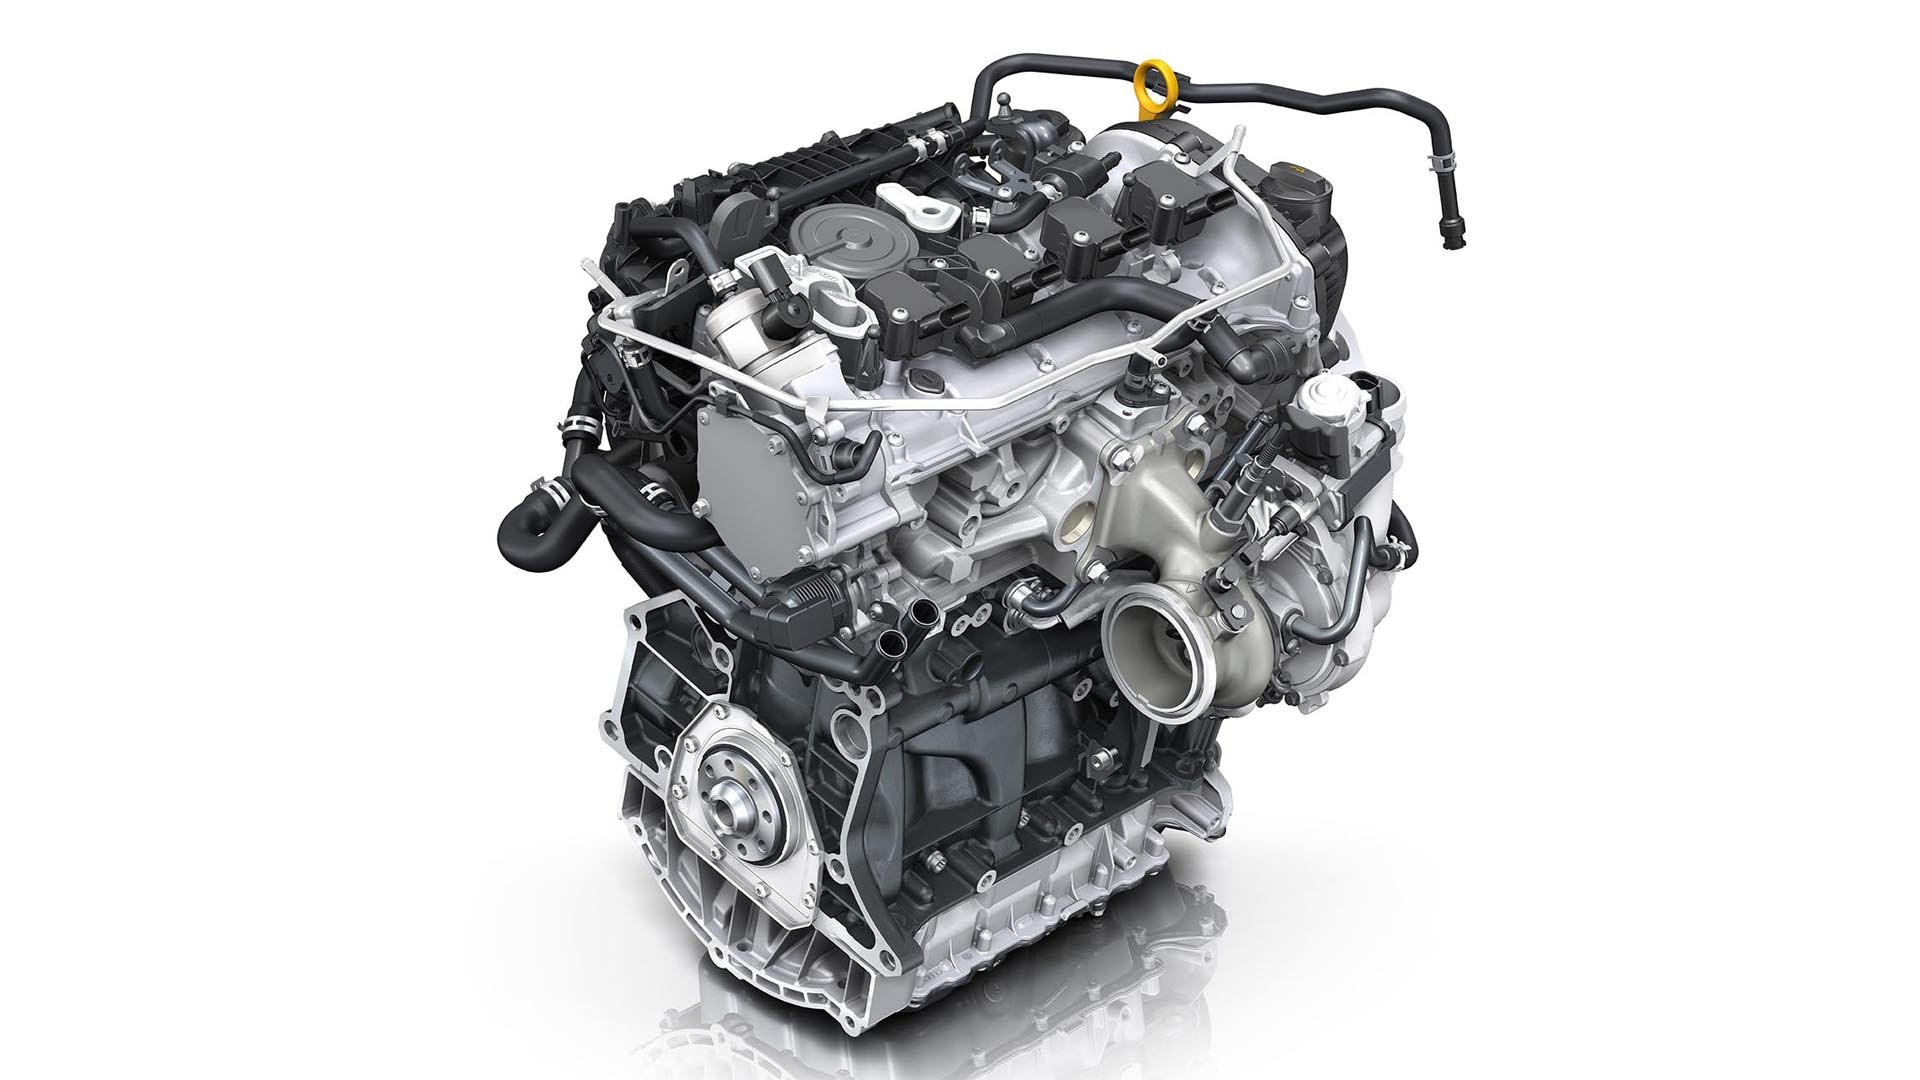 The Definitive Guide To The Mk7 GTI EA888 Engine (Gen 3)